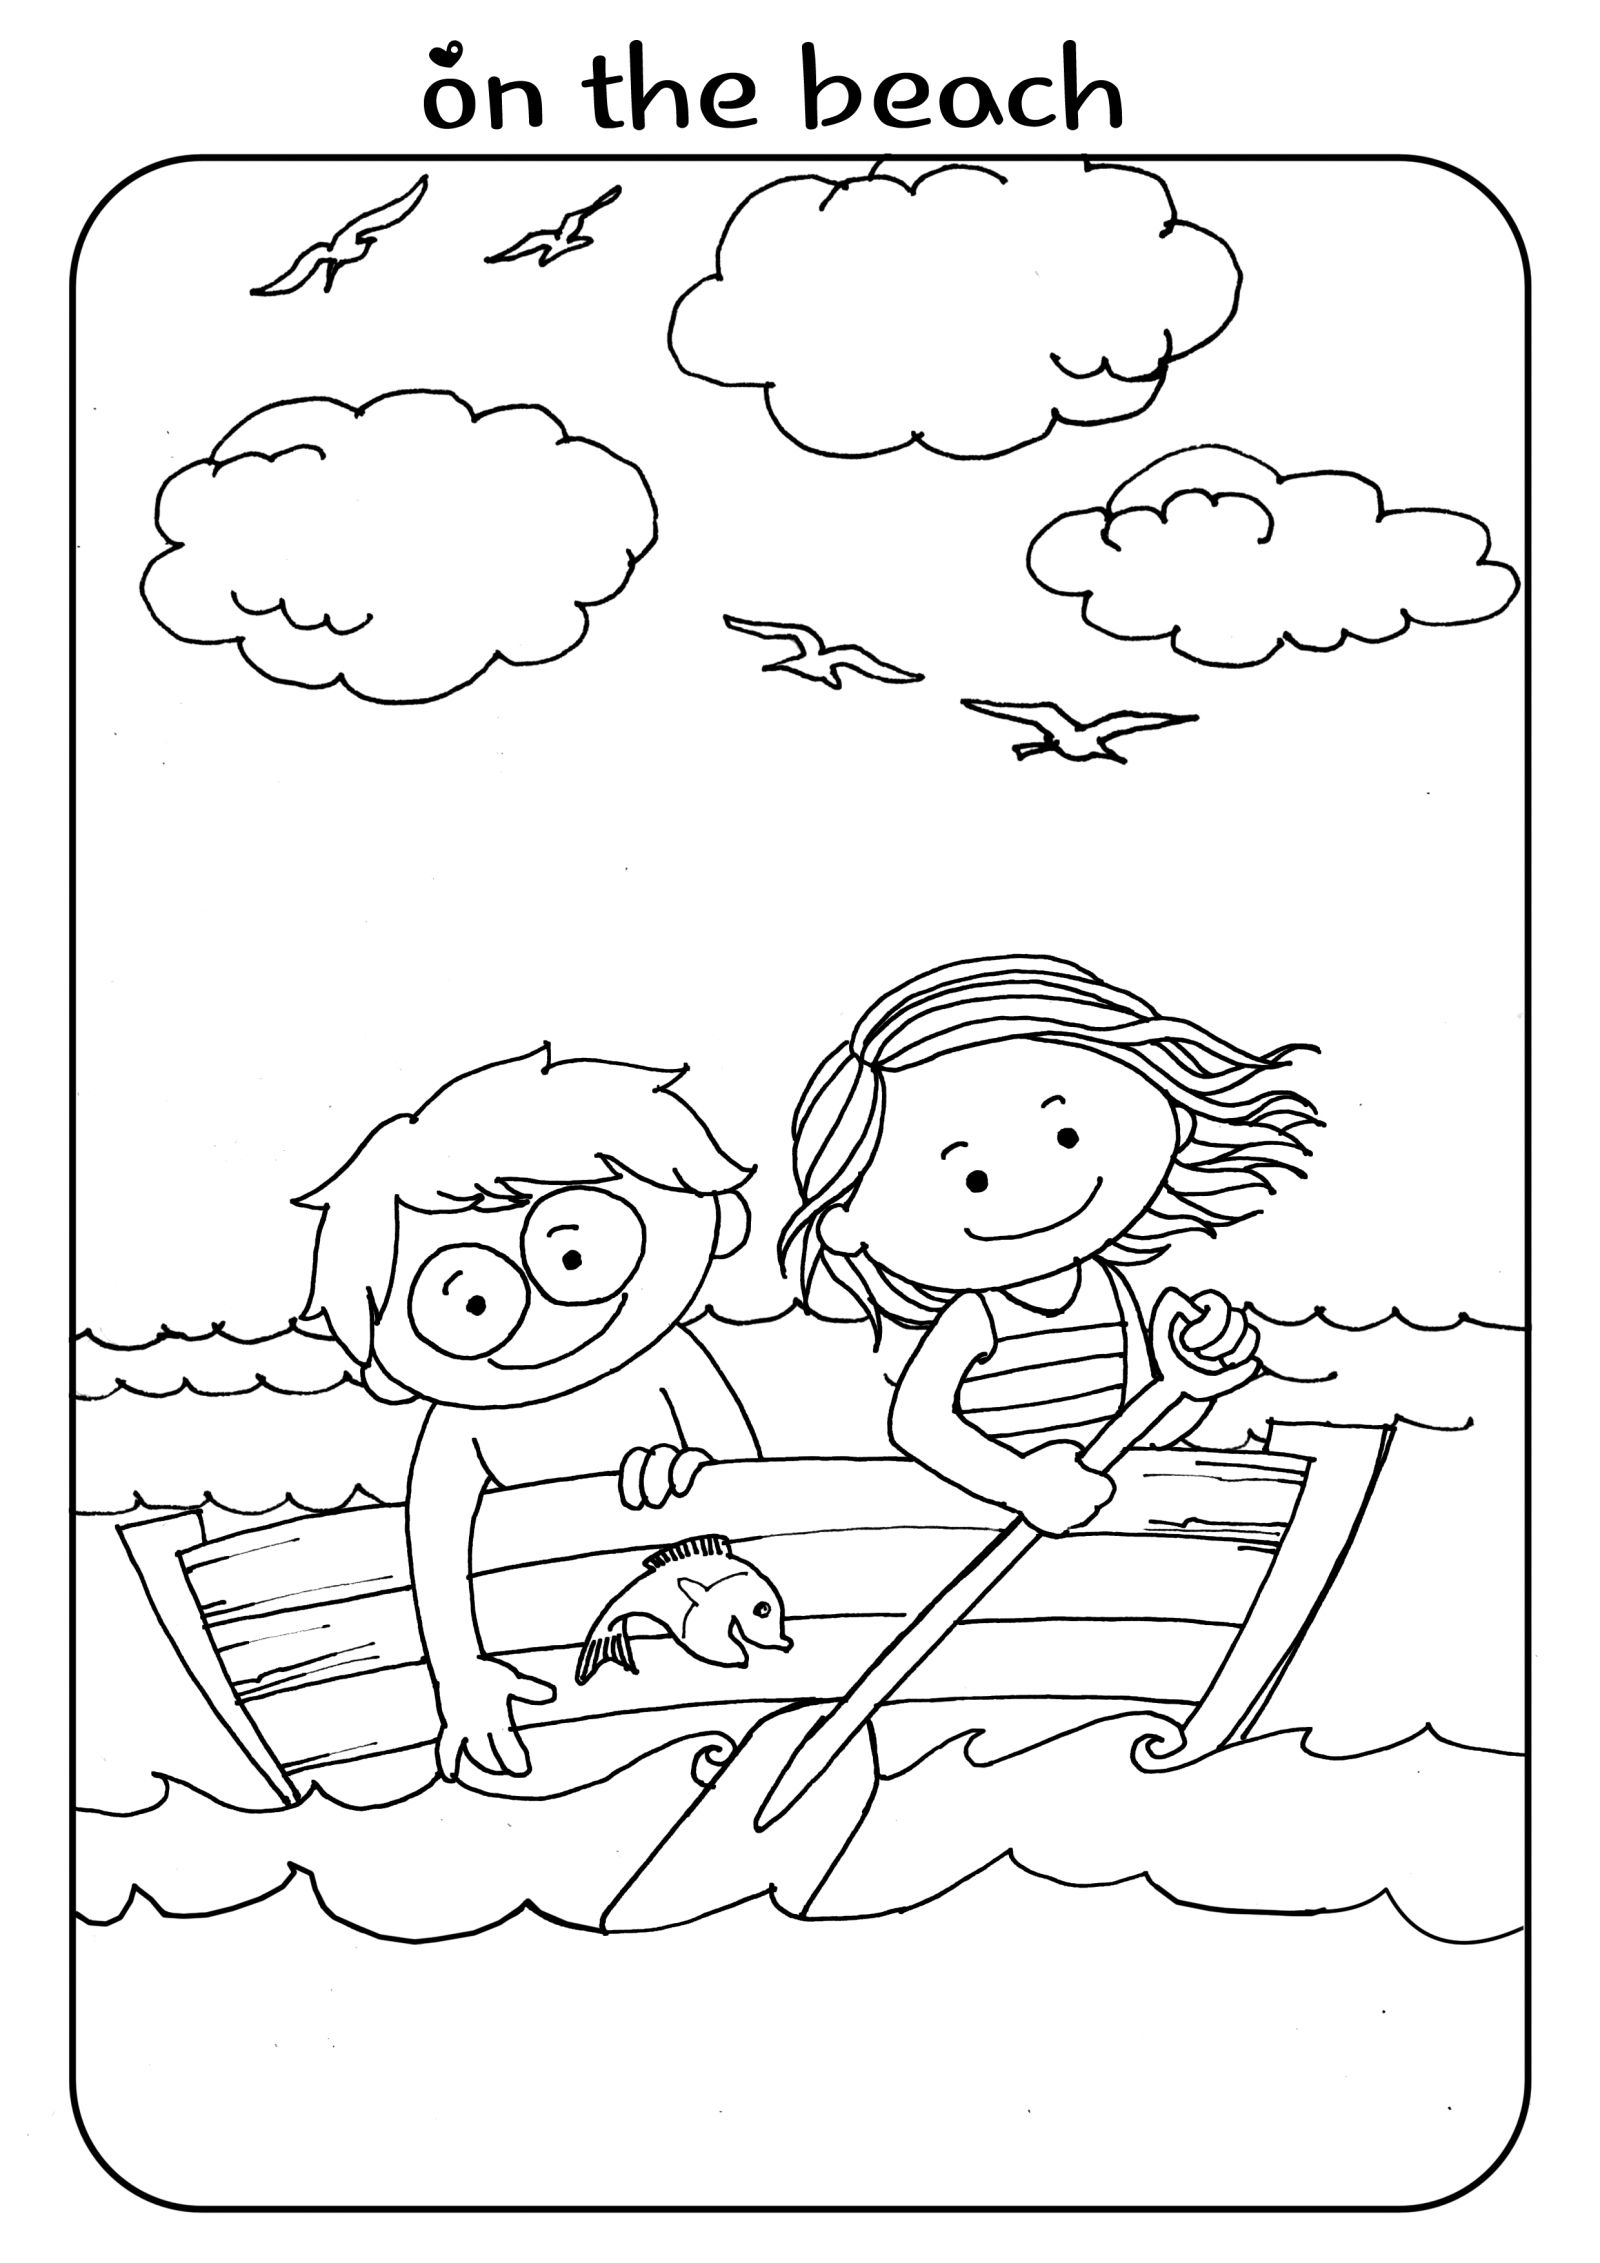 Beach Boat Kids Activity Coloring Page Girl Boy Freebies Beach Coloring Pages Coloring Pages For Boys Dolphin Coloring Pages [ 2263 x 1600 Pixel ]